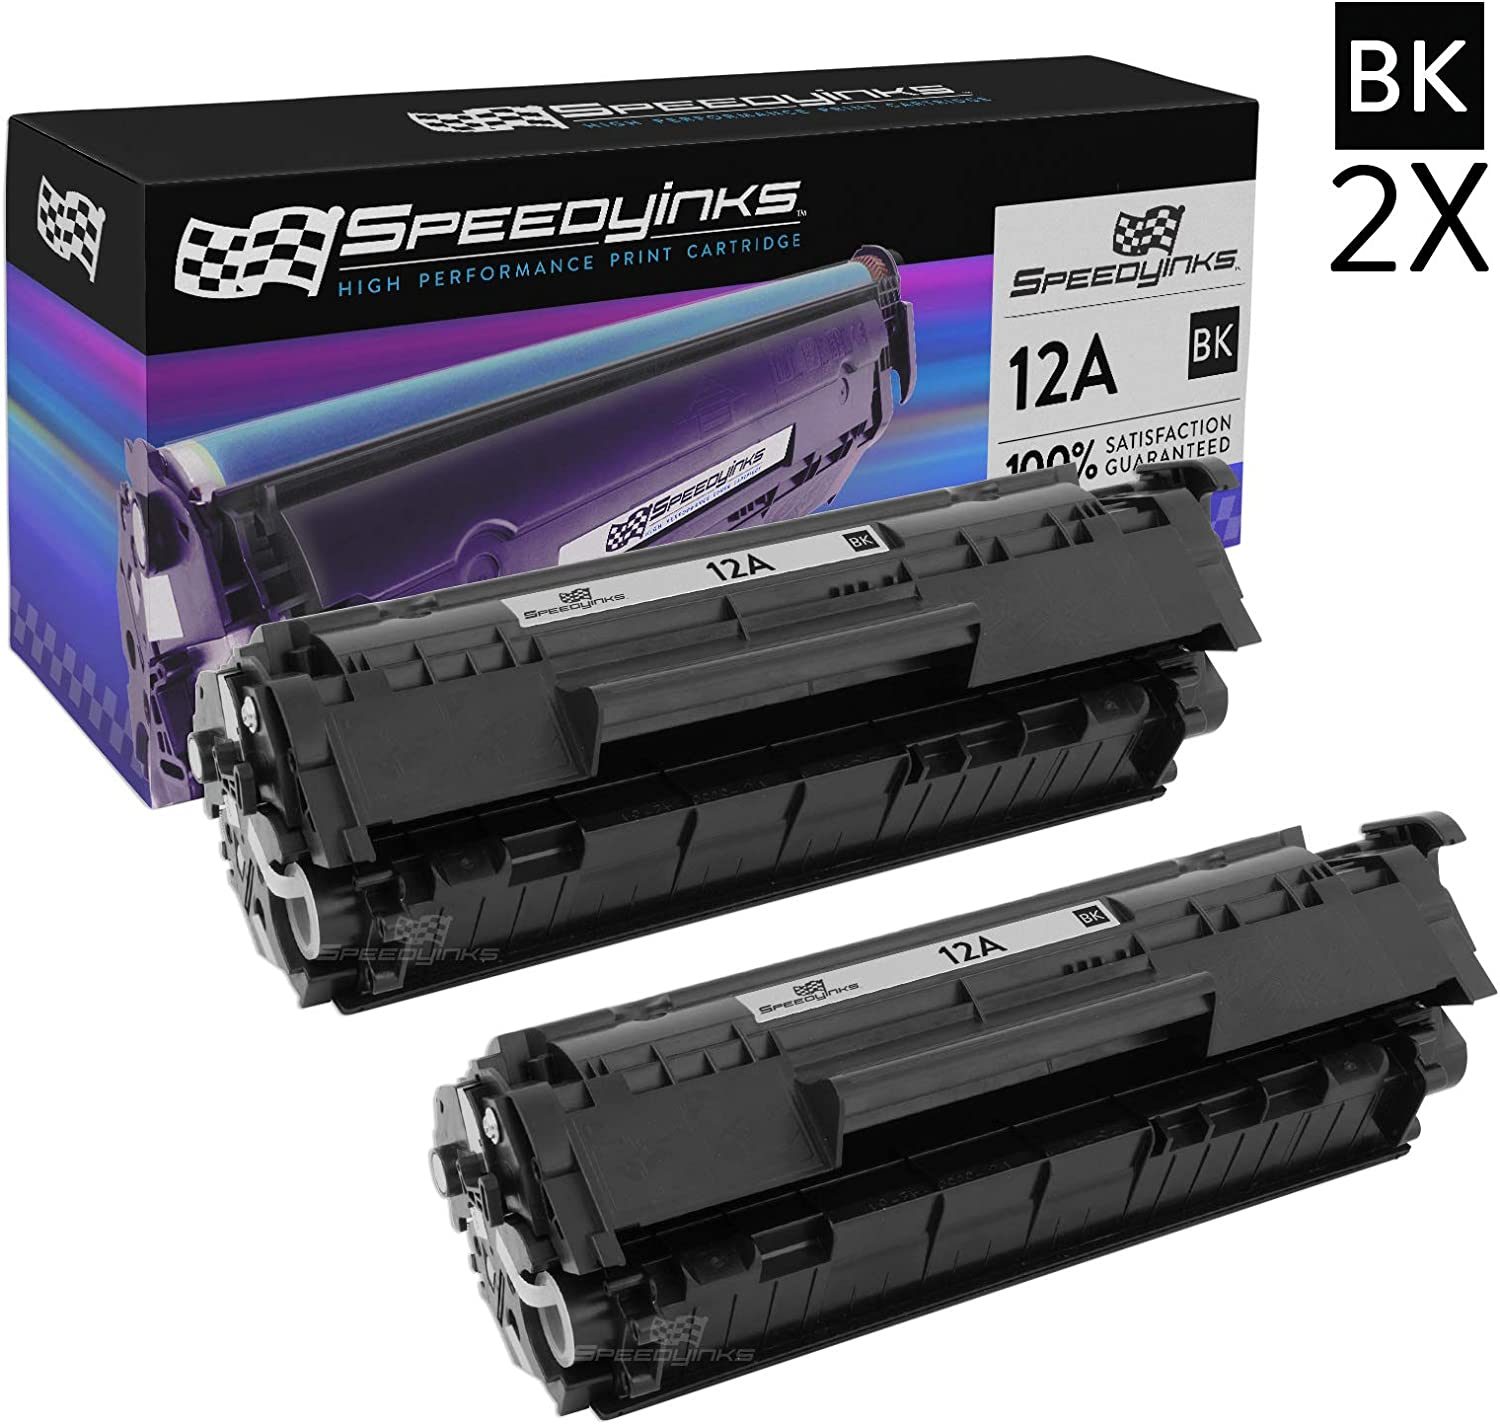 Speedy Inks Compatible Toner Cartridge Replacement for HP 12A Q2612A (Black, 2-Pack)